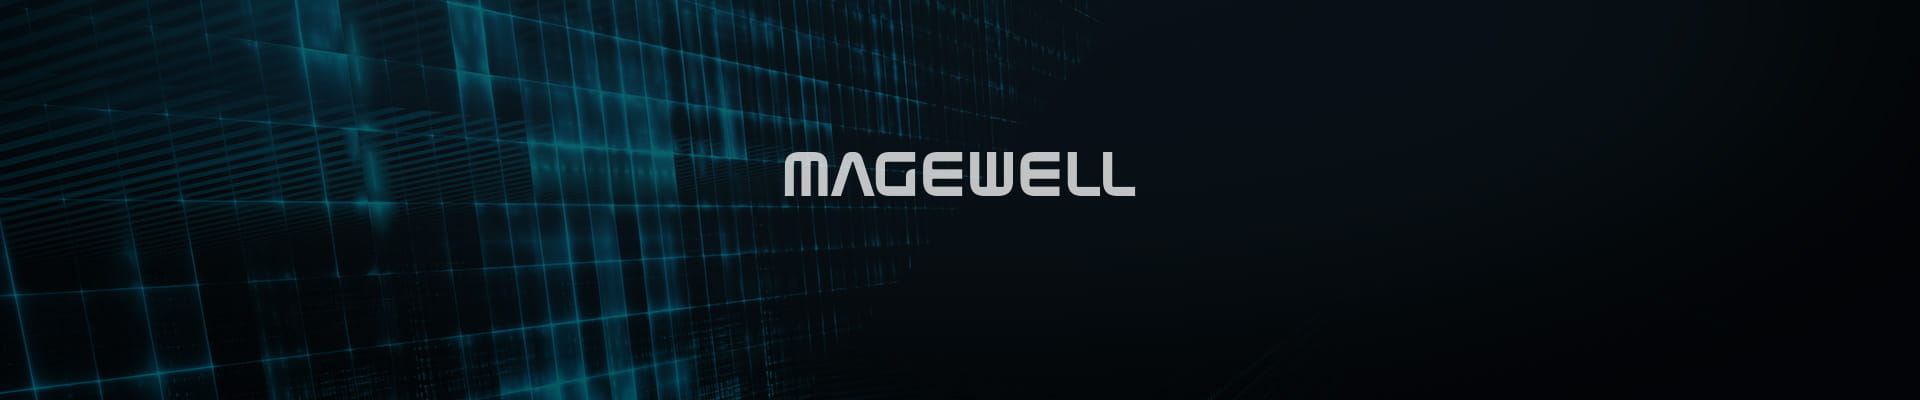 img-magewell-compatible-soft-icon-videostitch